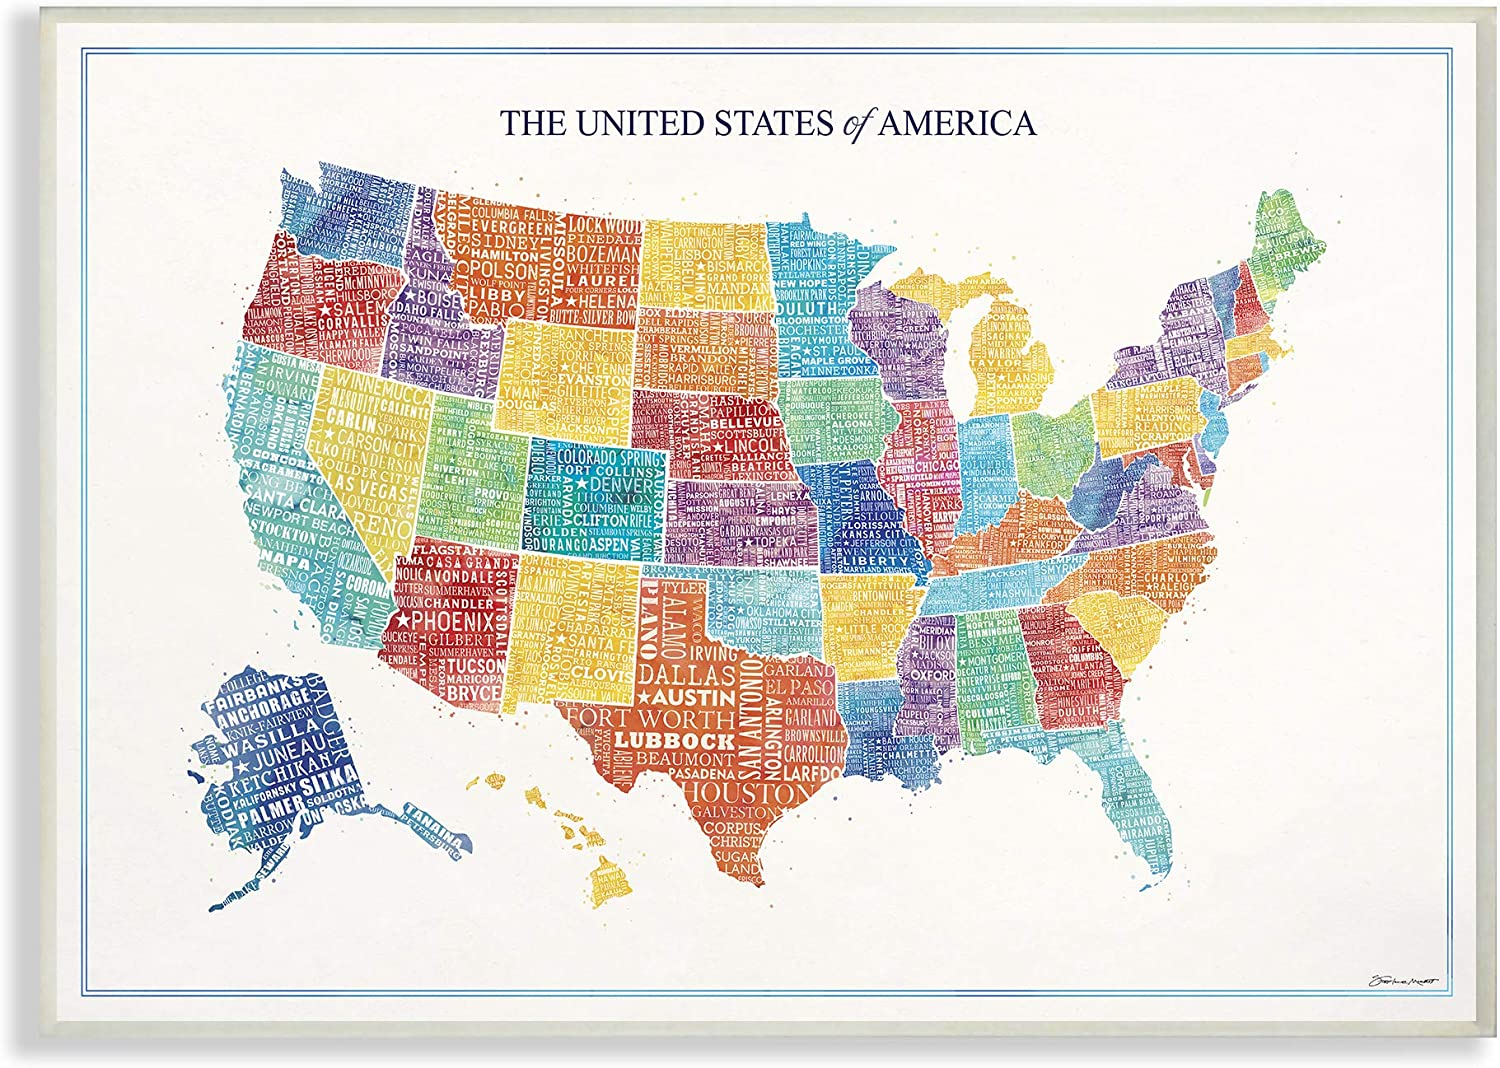 The Stupell Home Decor Bright Multicolord and Lettered US Map Wall Plaque Art, 13 X 19 Multi-color